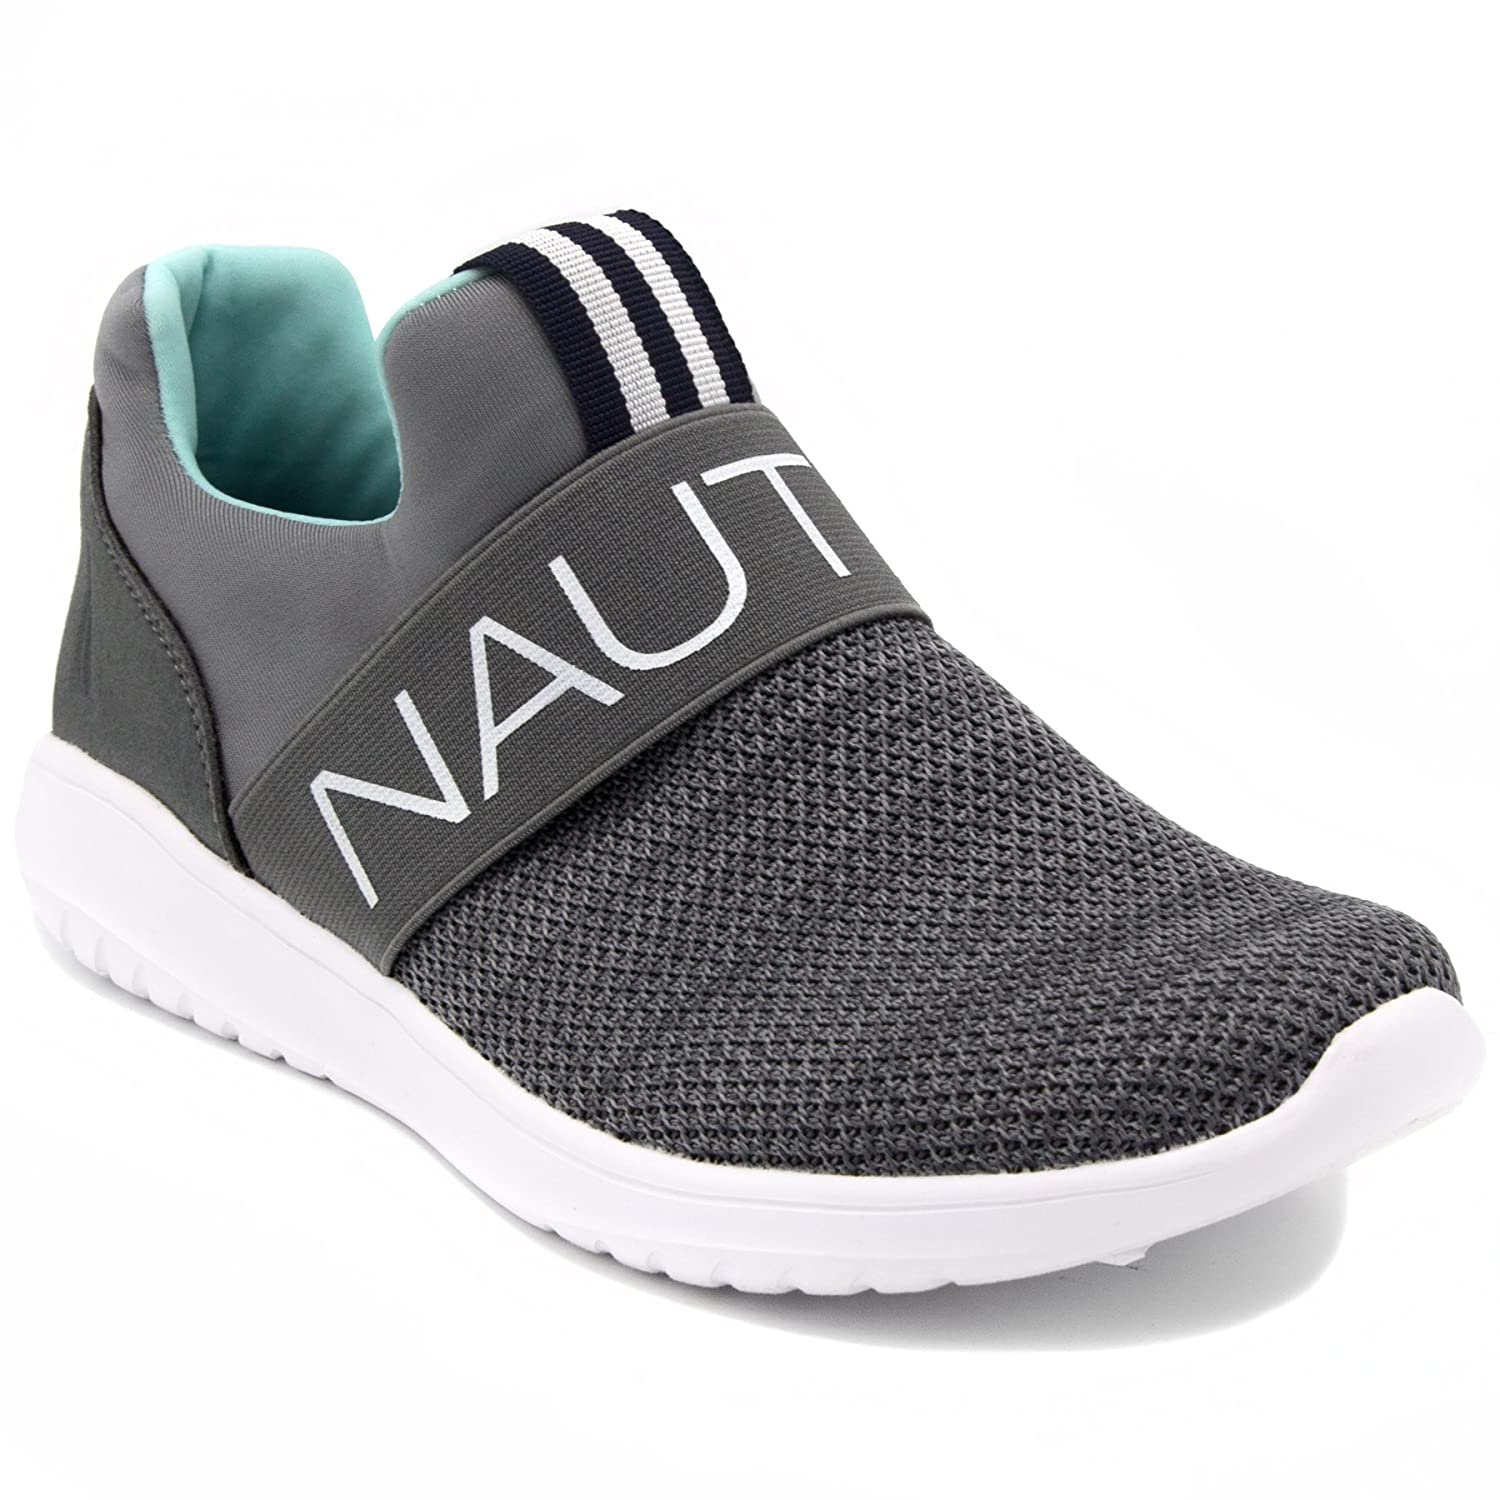 Nautica レディース ww0021 B079P8R6TH 8 B M US|Radical Grey Slip-on Radical Grey Slip-on 8 B M US